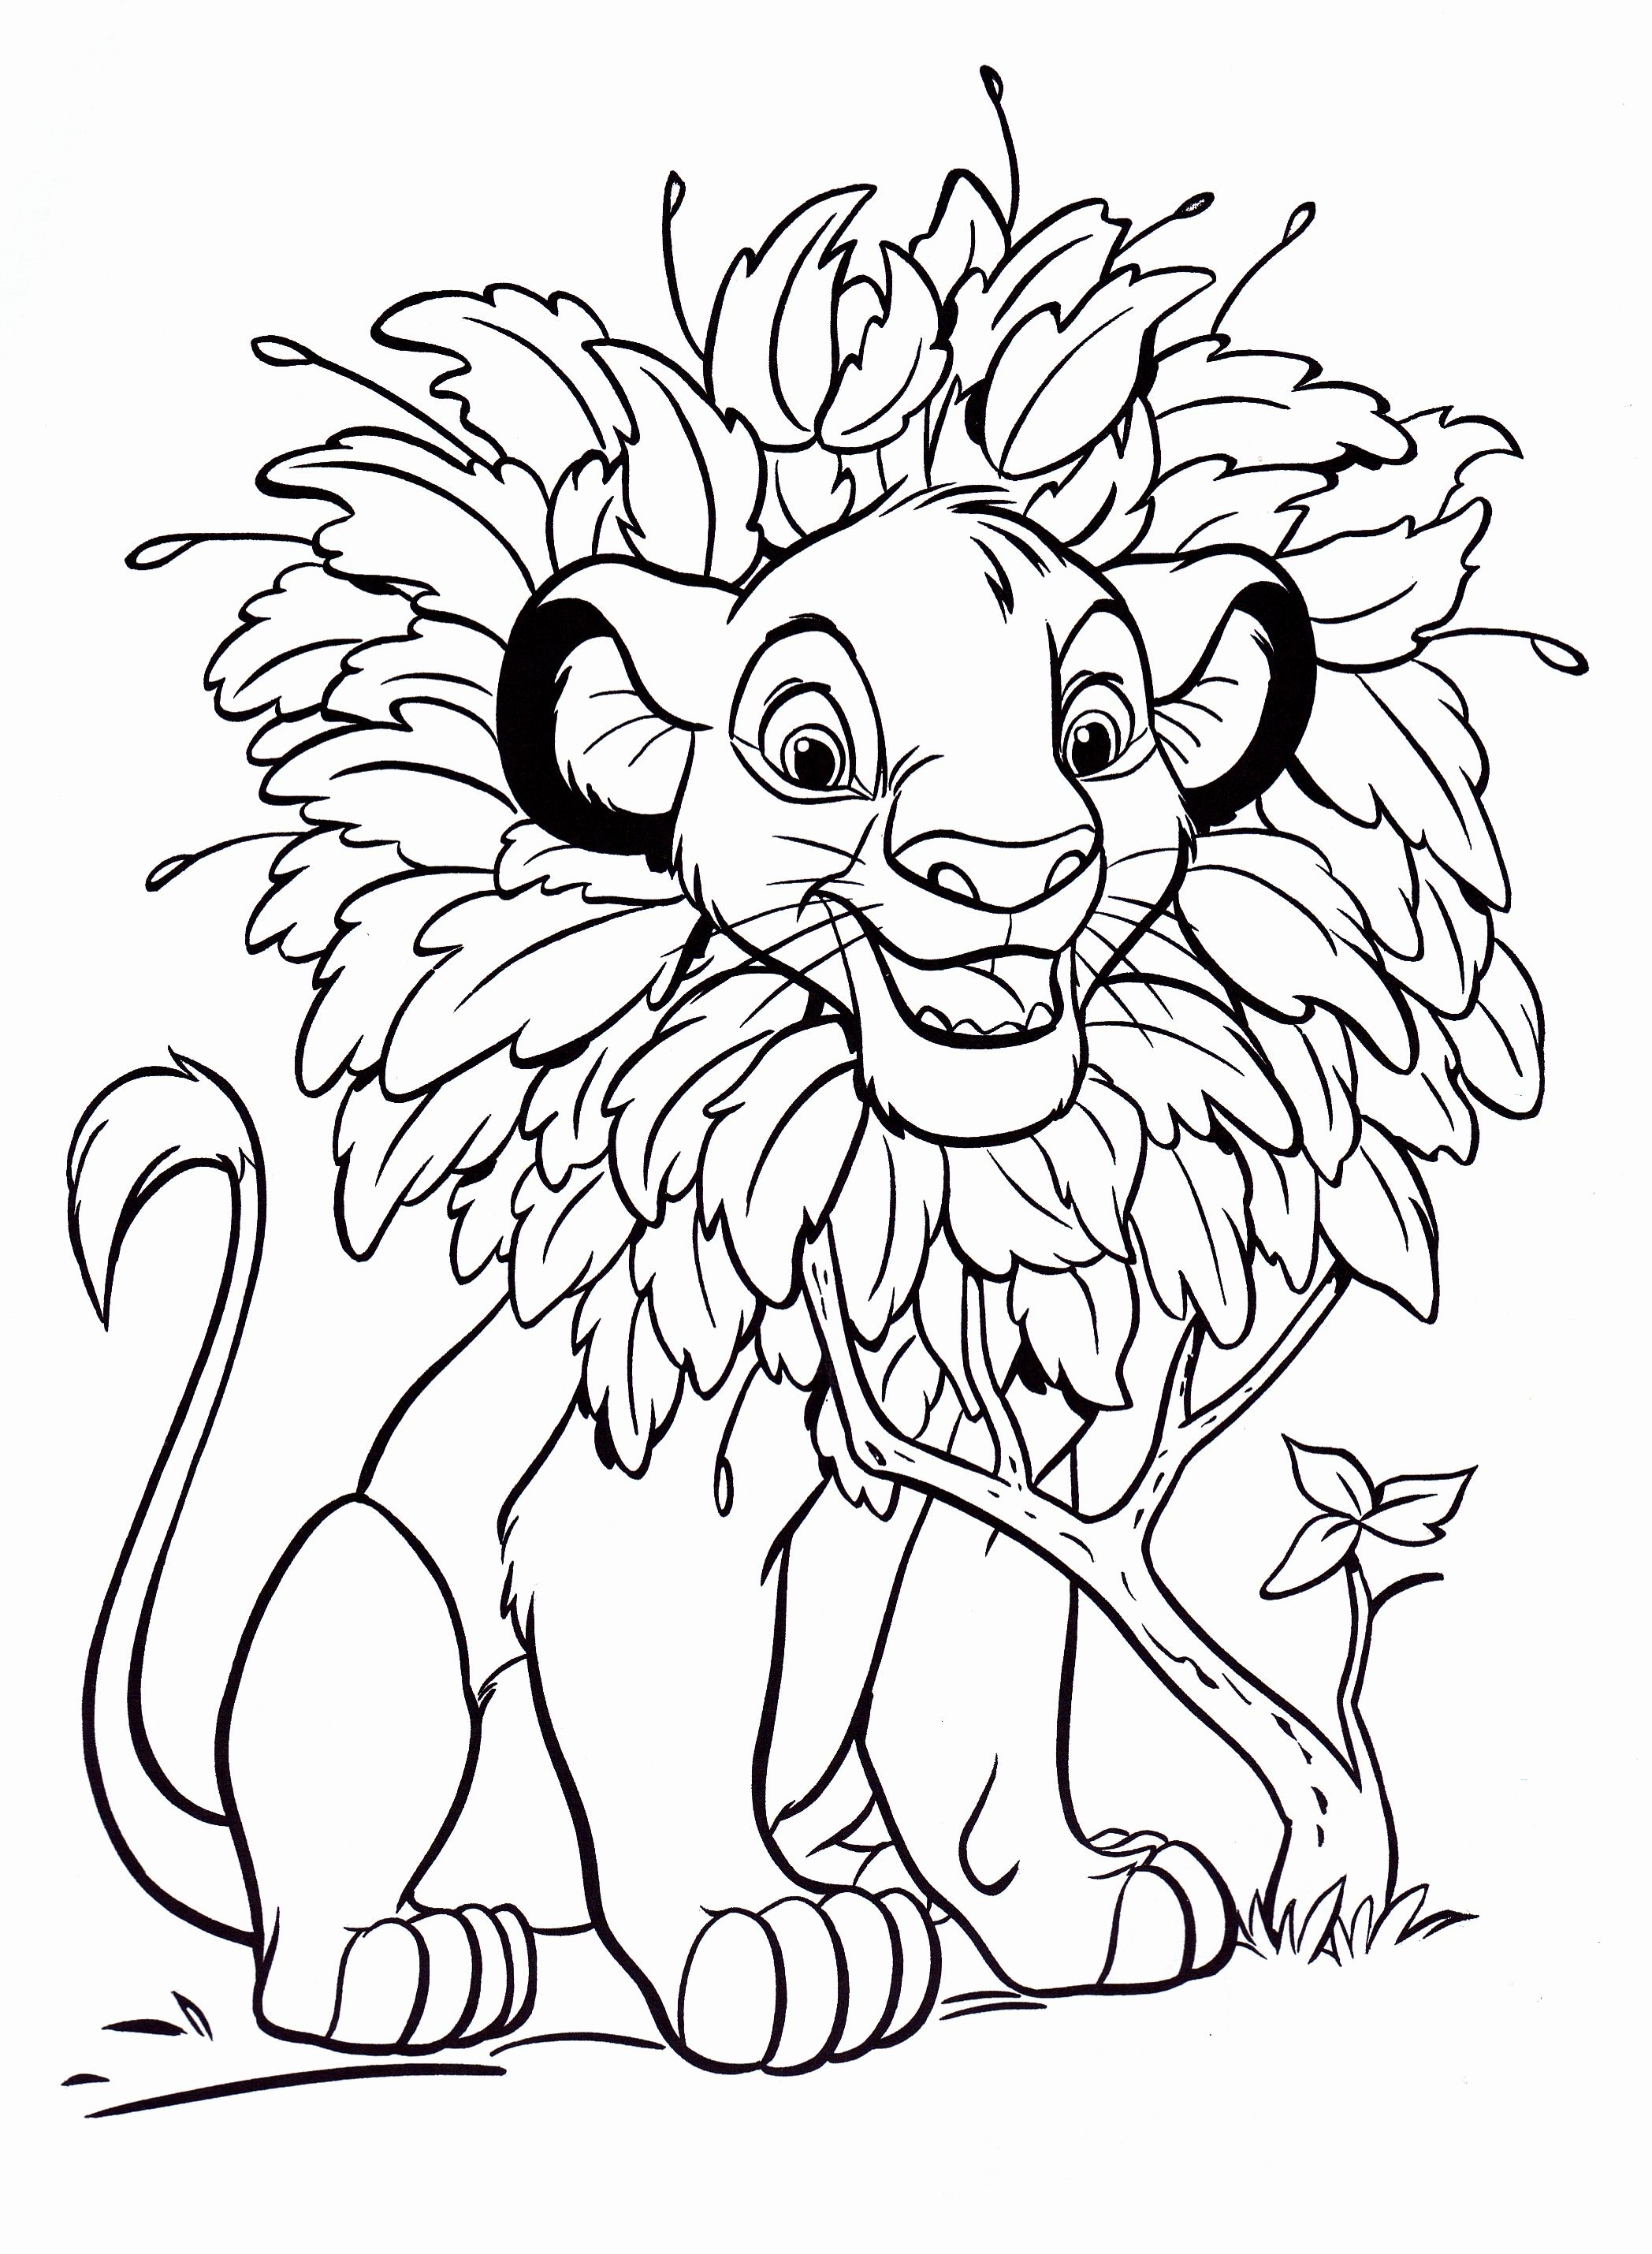 Pin von Pamela Miller auf Printables - Coloring Pages | Pinterest